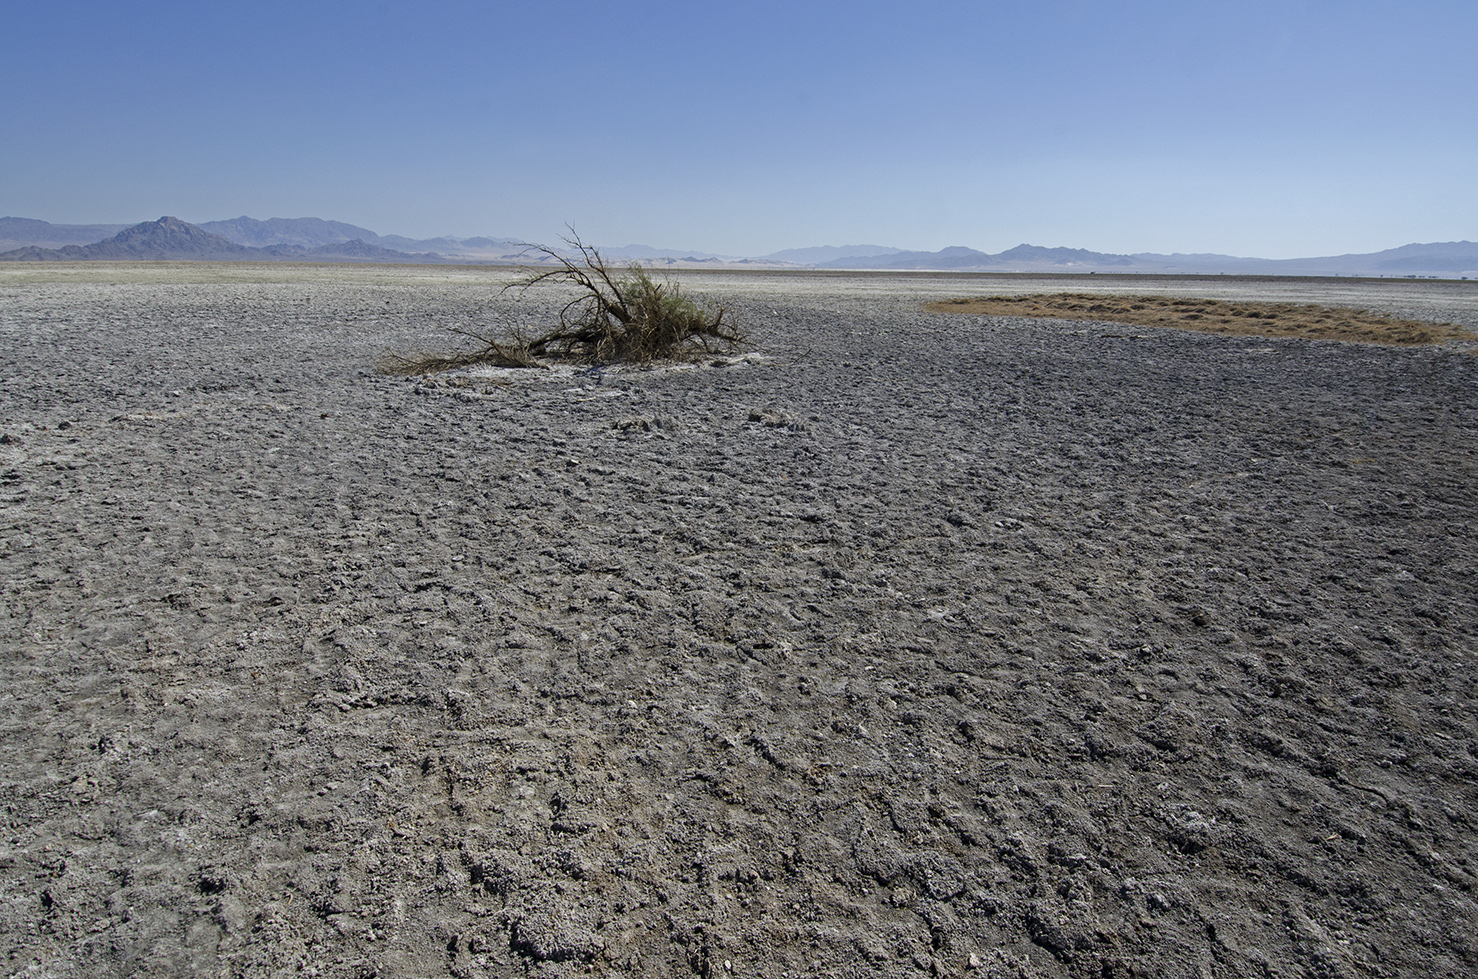 Looking out at the dry lake.